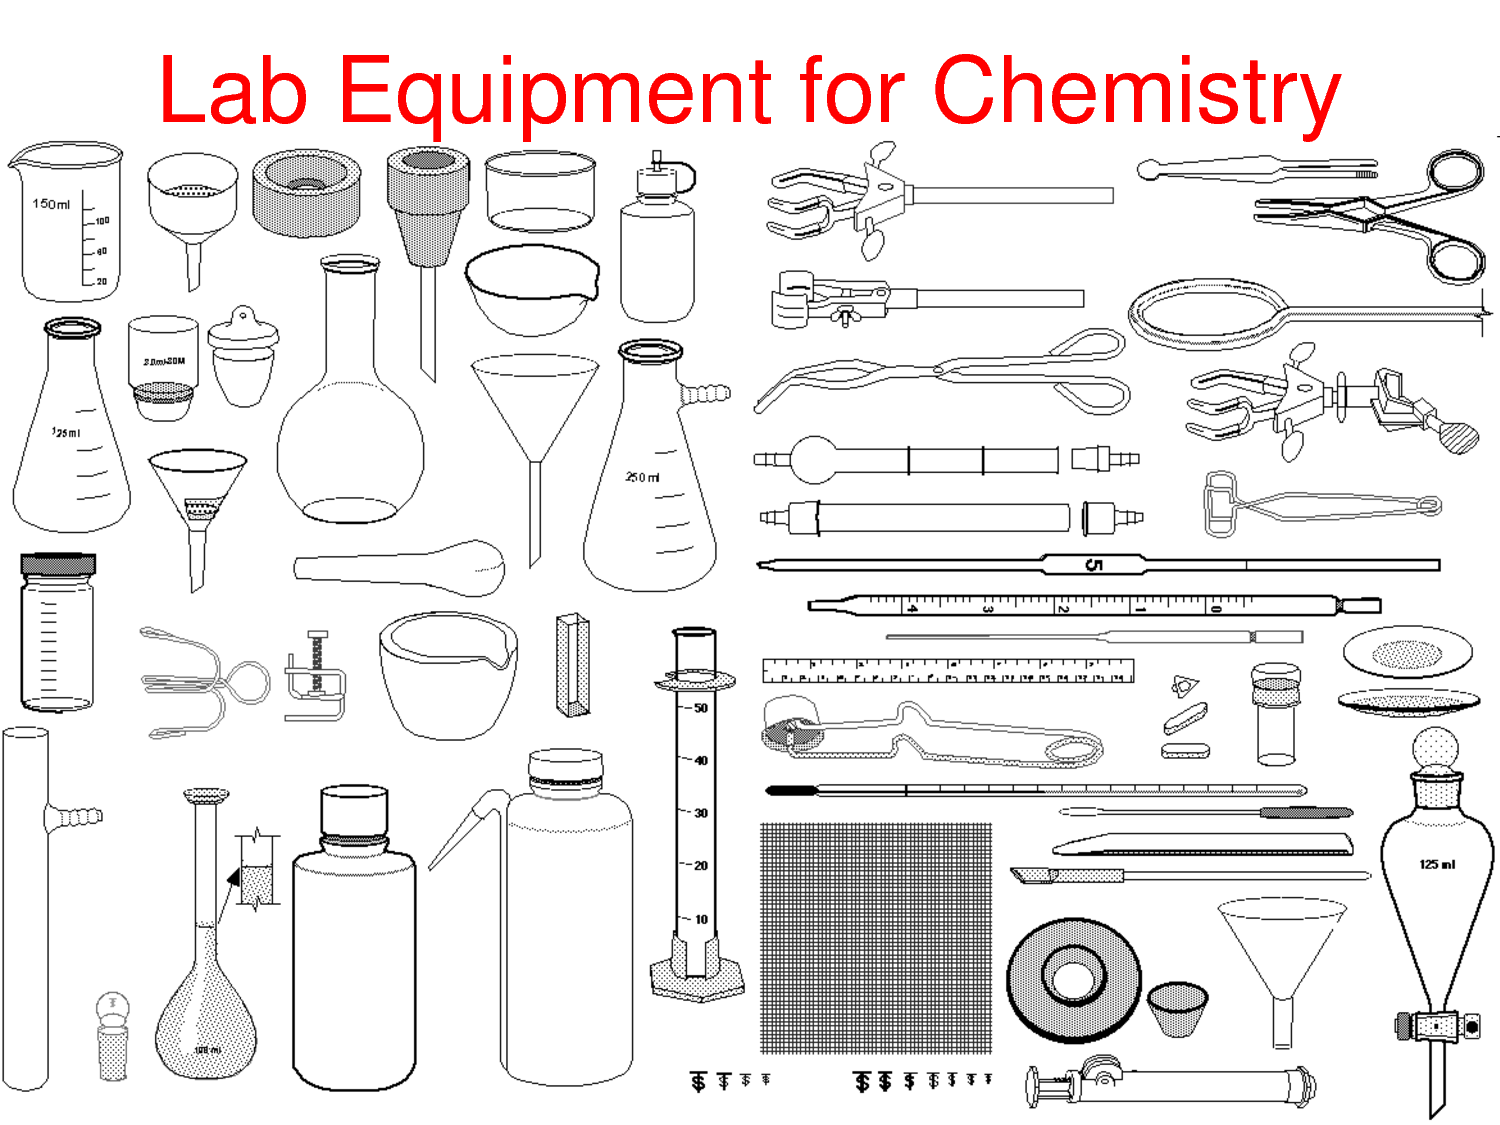 Worksheet Lab Equipment Name 62 best lab glassware images on pinterest chemistry and labs equipment bing images